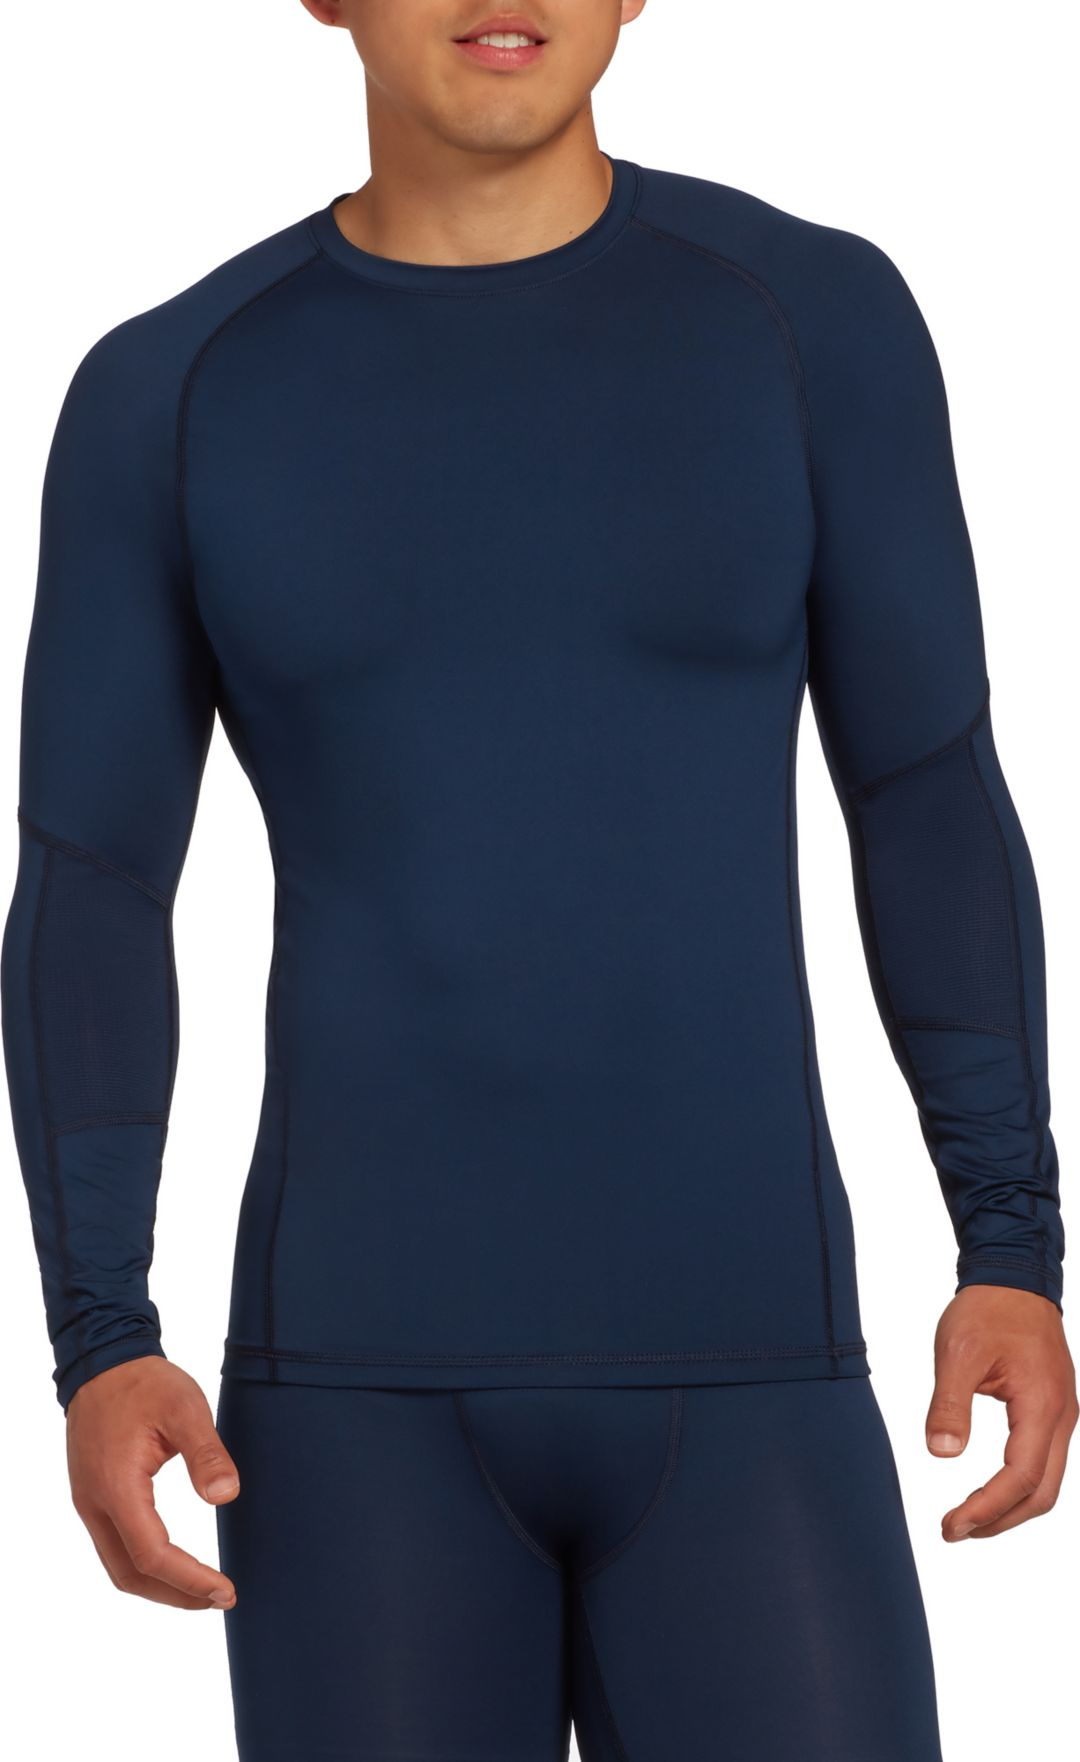 super popular the cheapest moderate price DSG Men's Compression Crew Long Sleeve Shirt